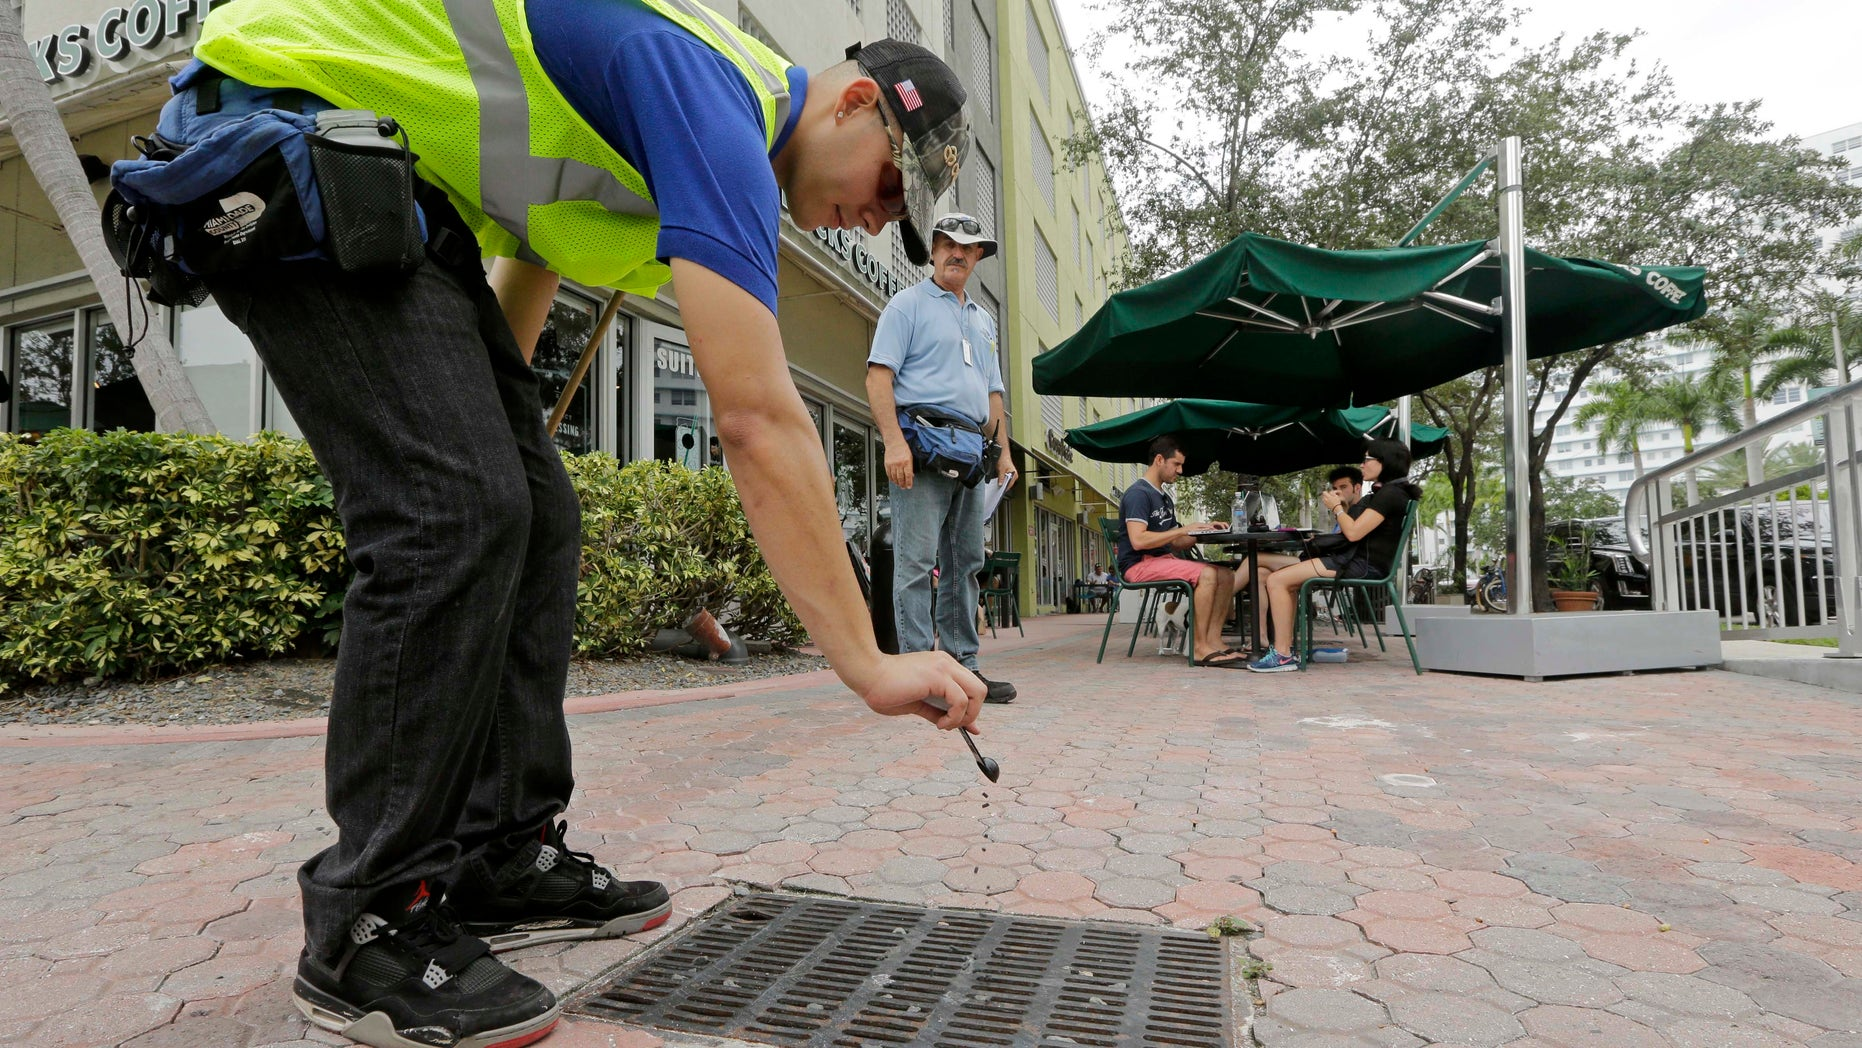 Miami-Dade mosquito control contractor Alejandro Espinosa pours chemicals into a storm sewer on a sidewalk, Friday, Sept. 2, 2016, in Miami Beach, Fla.